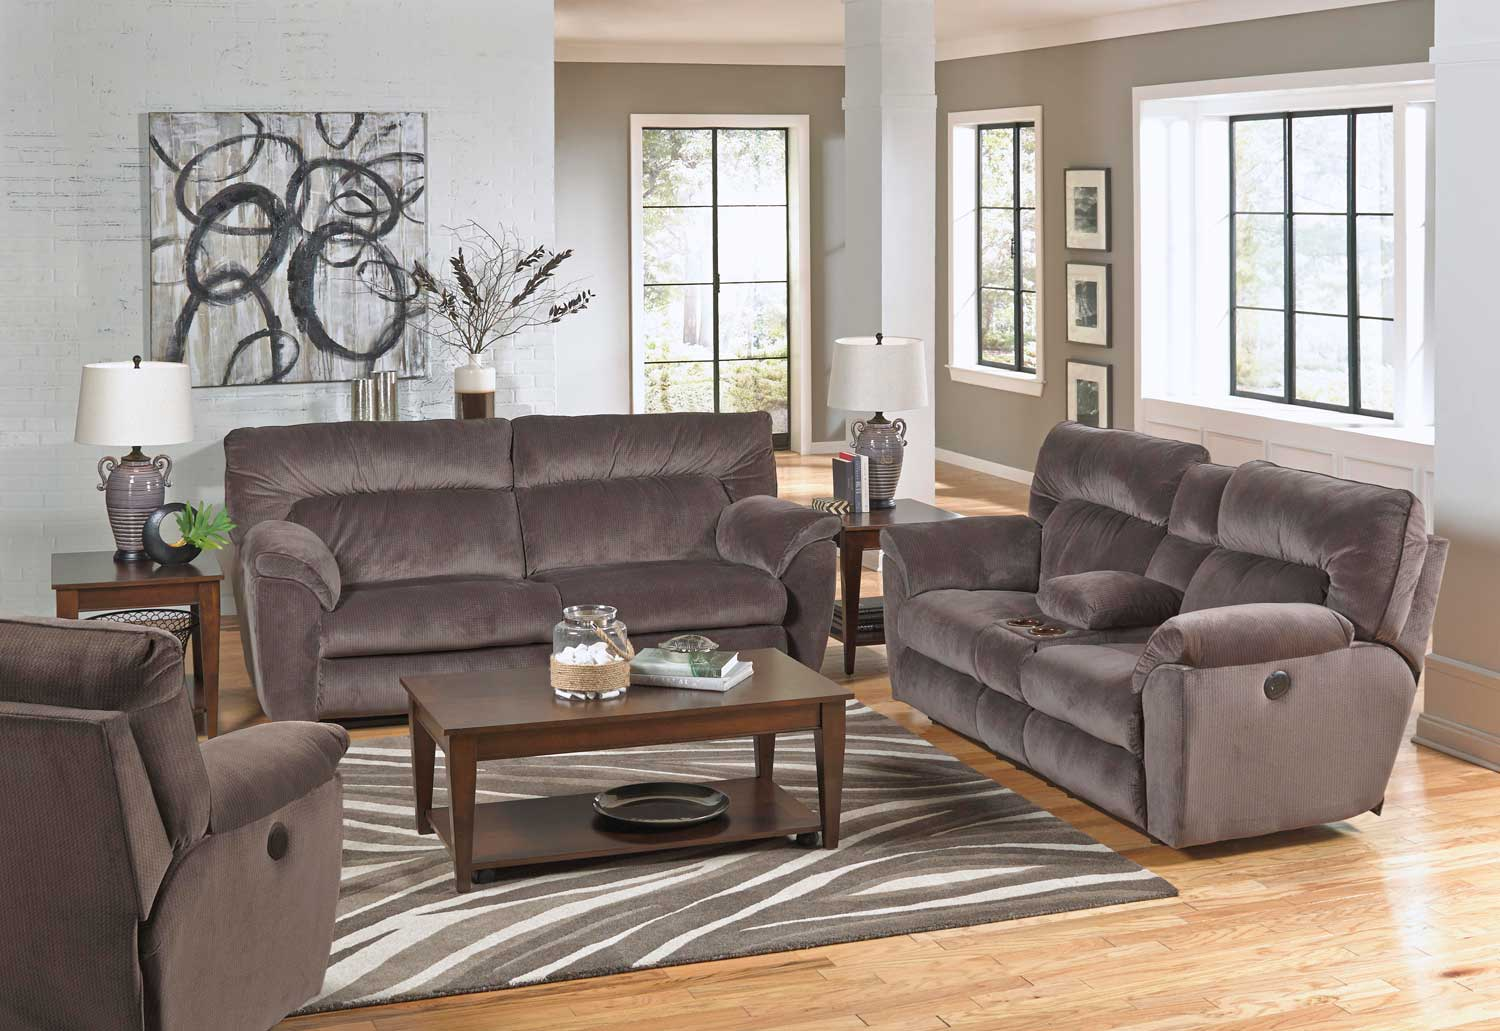 CatNapper Nichols Reclining Sofa Set   Granite. CatNapper Nichols Reclining Sofa Set   Granite CN 1671 Sofa Set